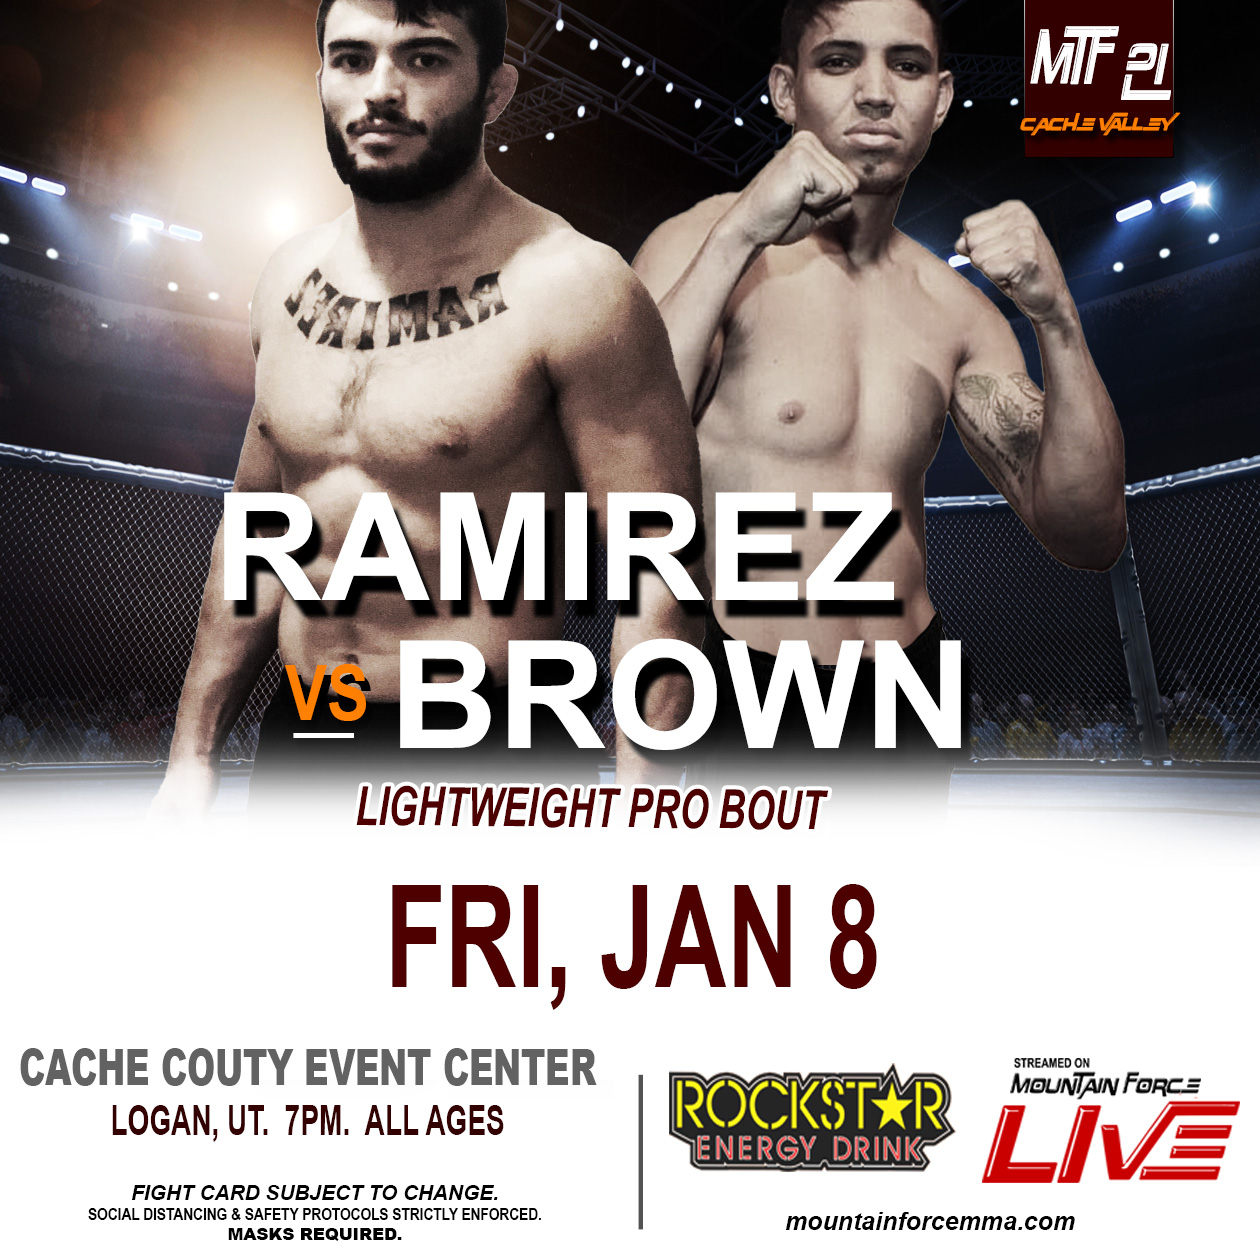 MTF 21 POSTER - RAMIREZ VS BROWN